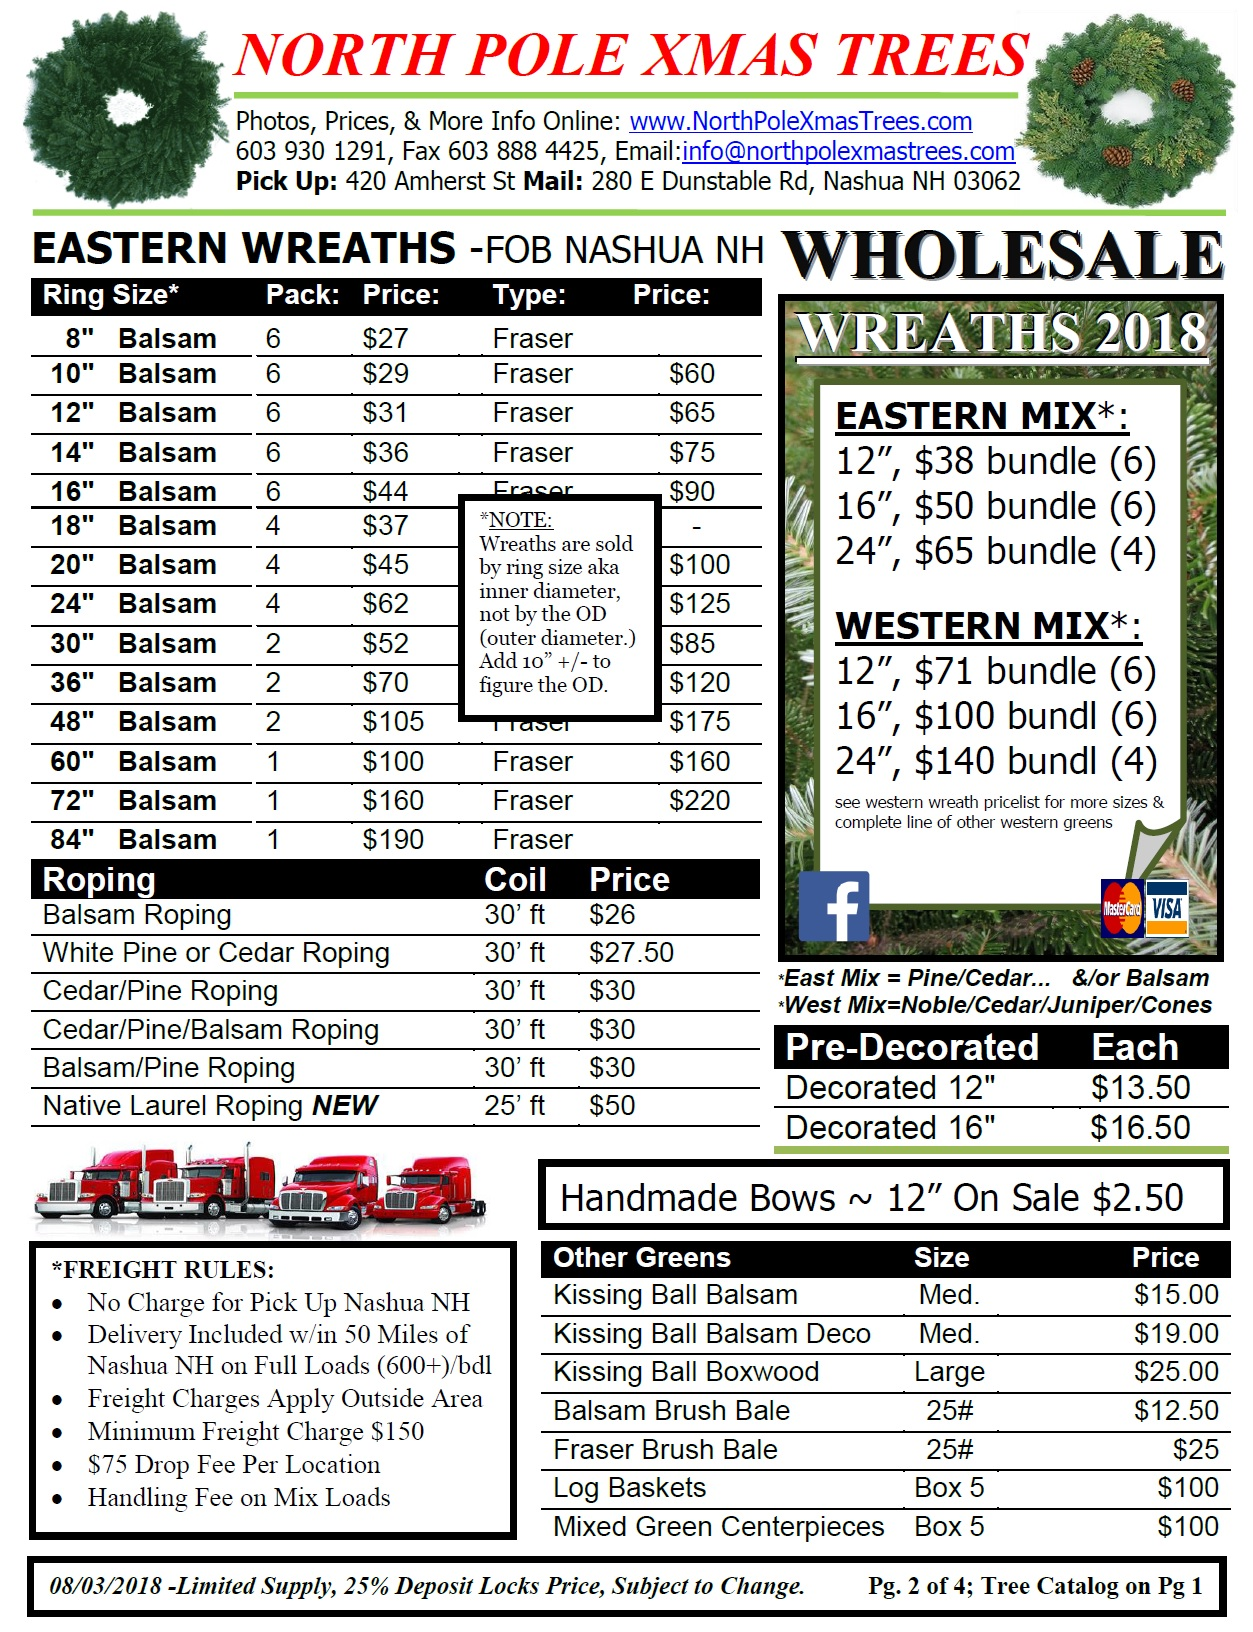 Wholesale Balsam Wreath Price list 2018